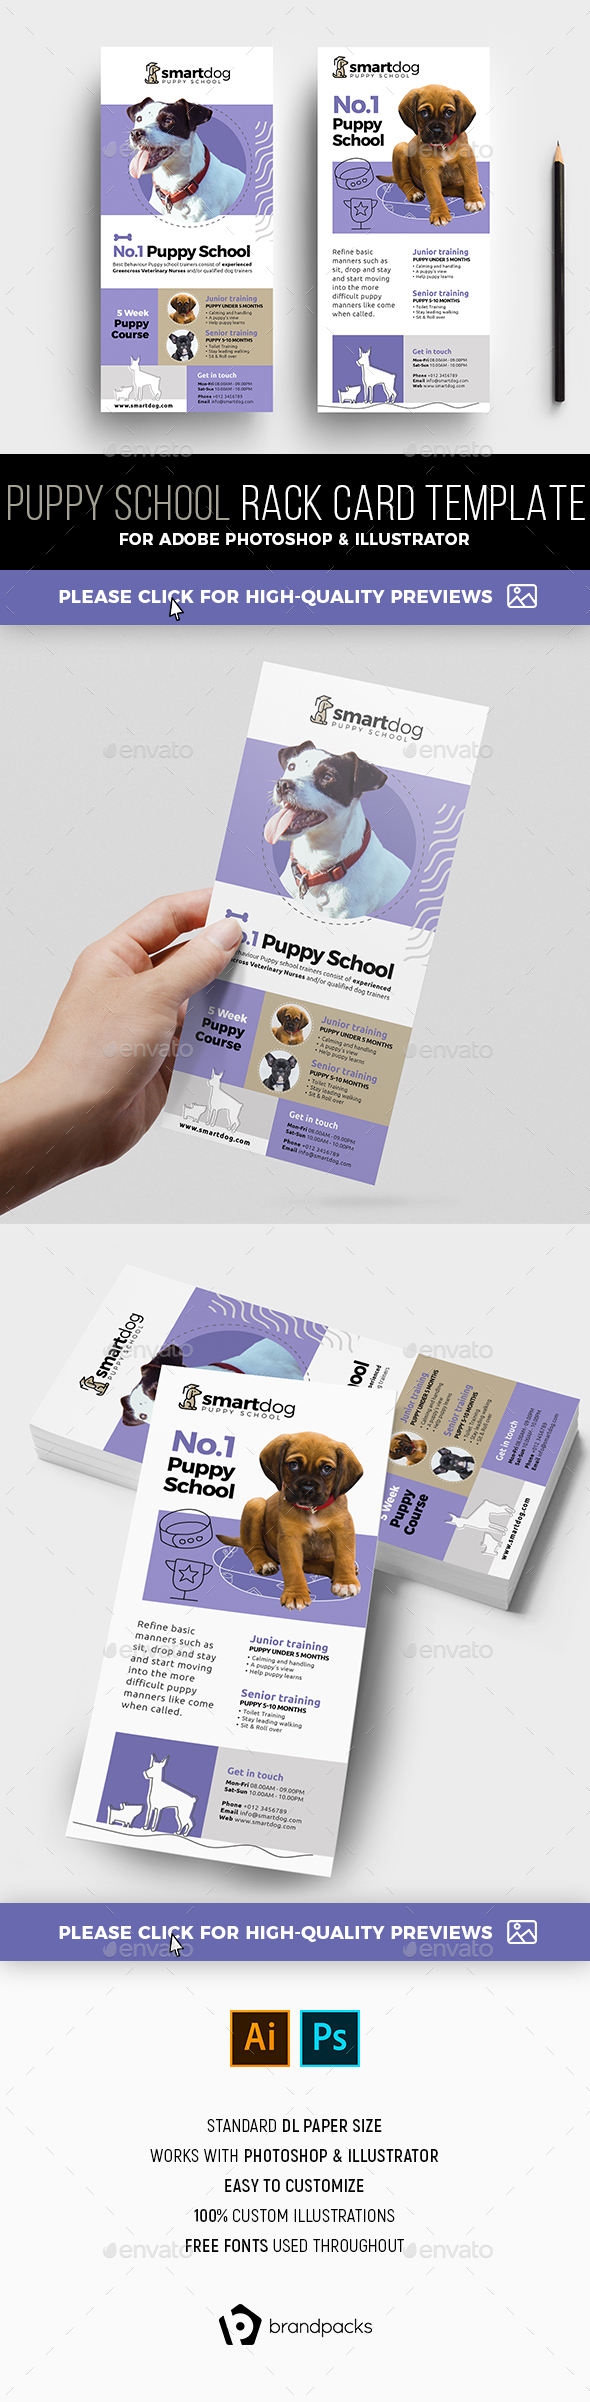 Puppy School Rack Card Template - Commerce Flyers